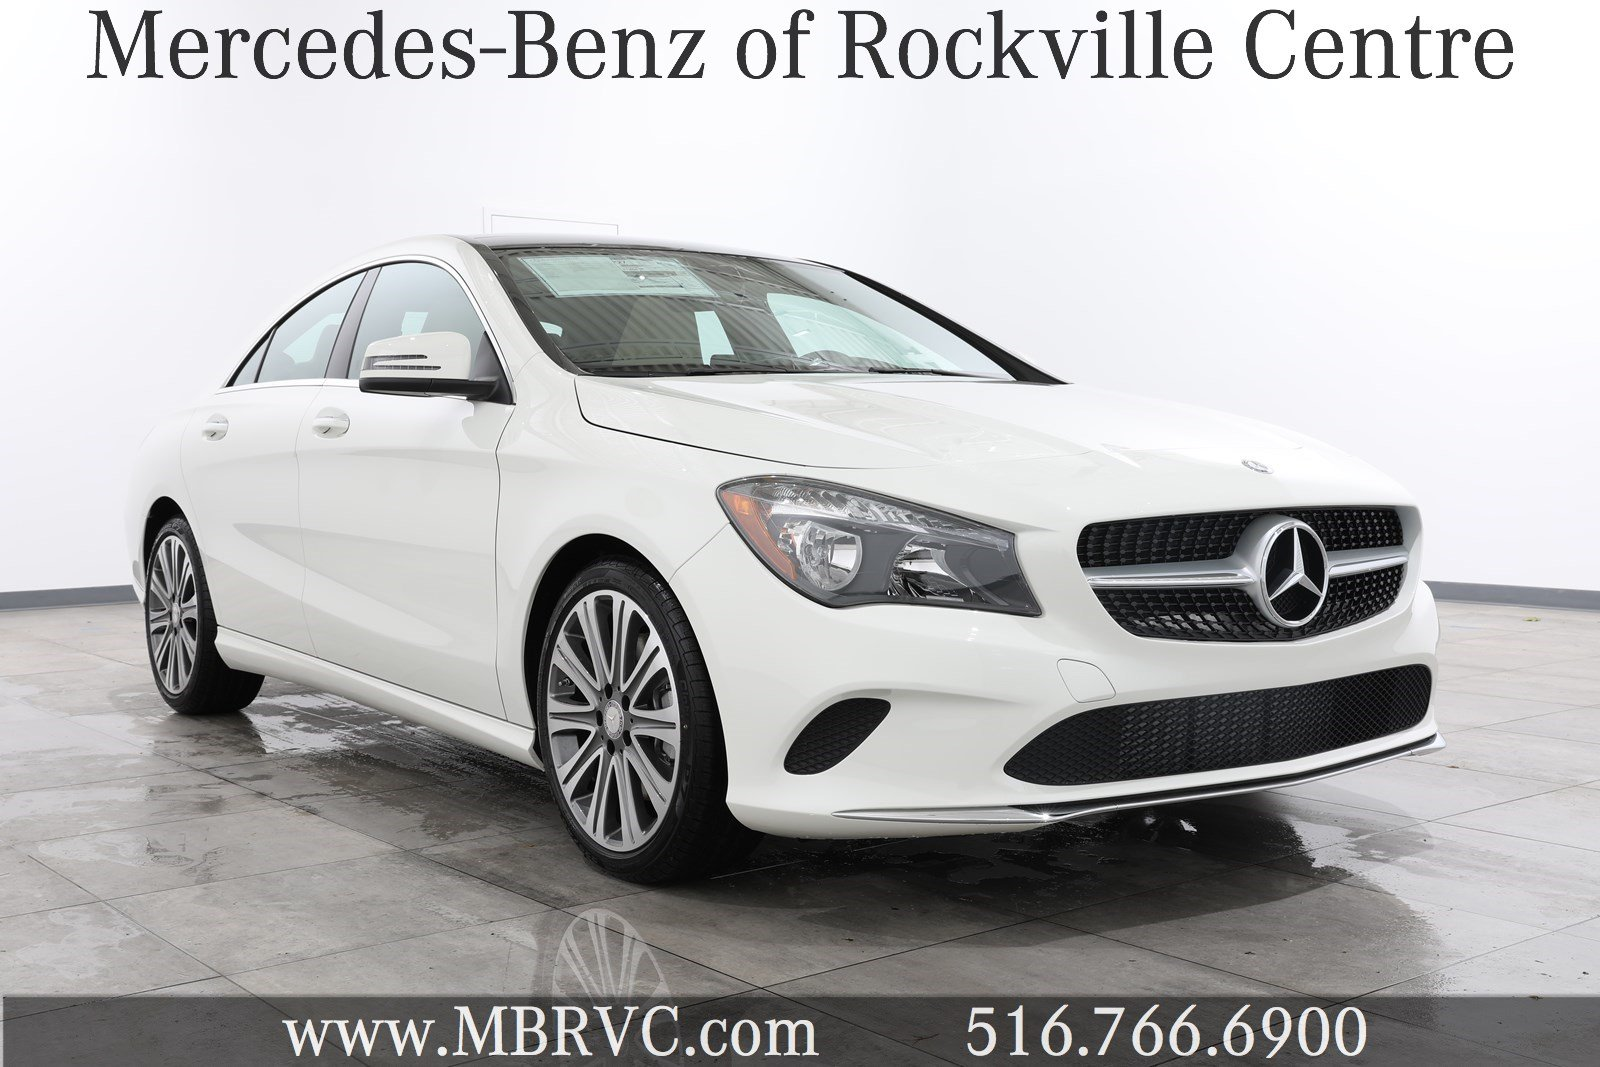 New 2018 mercedes benz cla cla 250 coupe in rockville for Mercedes benz rockville centre service